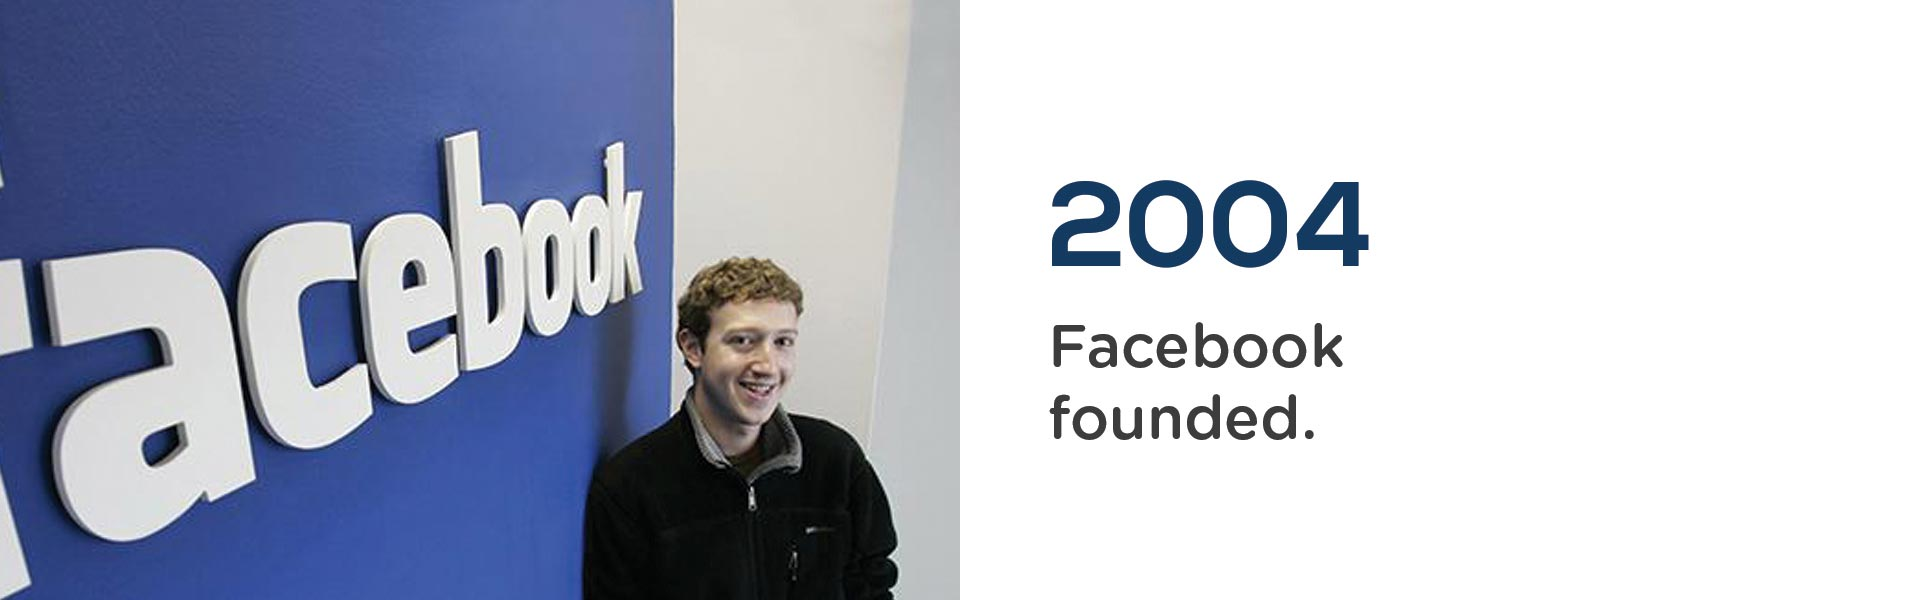 in 2004, Facebook is founded by Mark Zuckerberg.Wrigley Claydon Solicitors, Trusted for 200 years